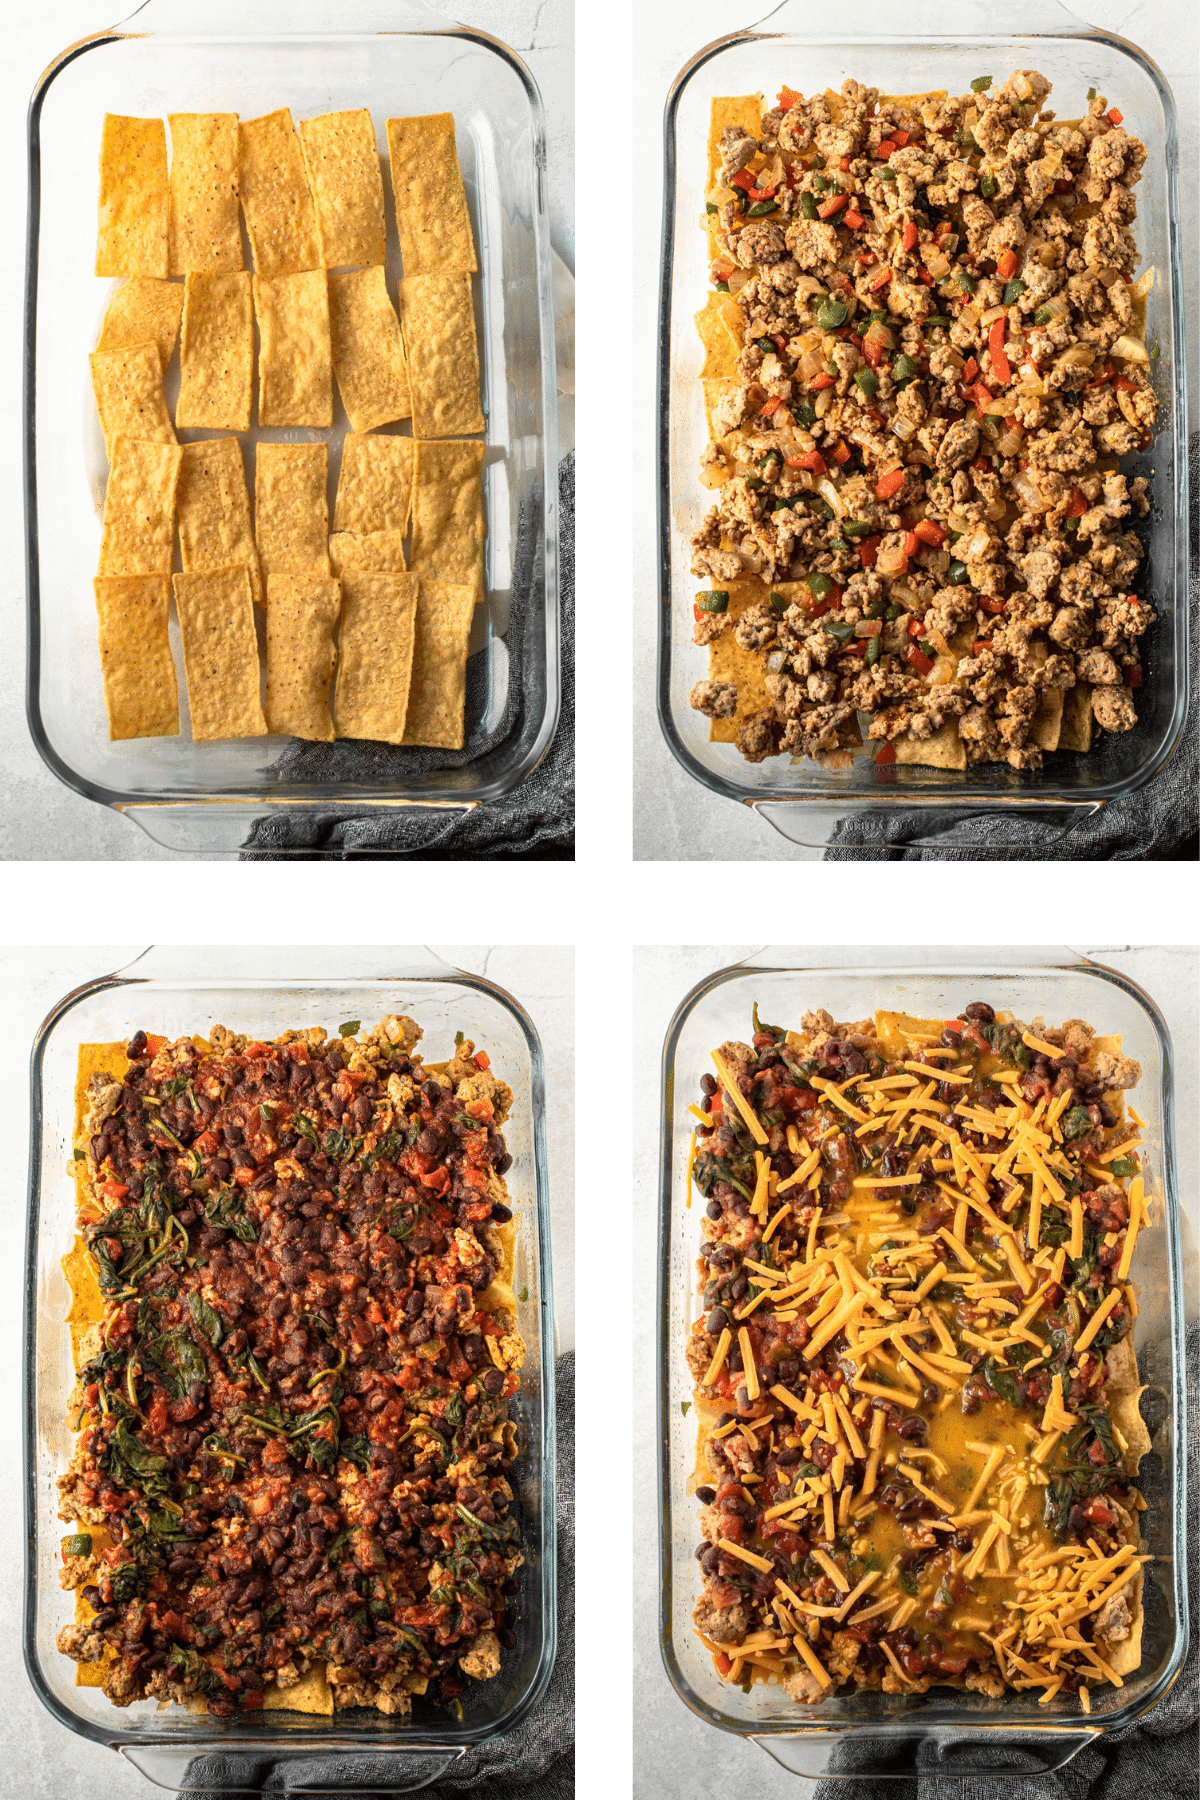 Layers of ingredients to make a breakfast casserole.